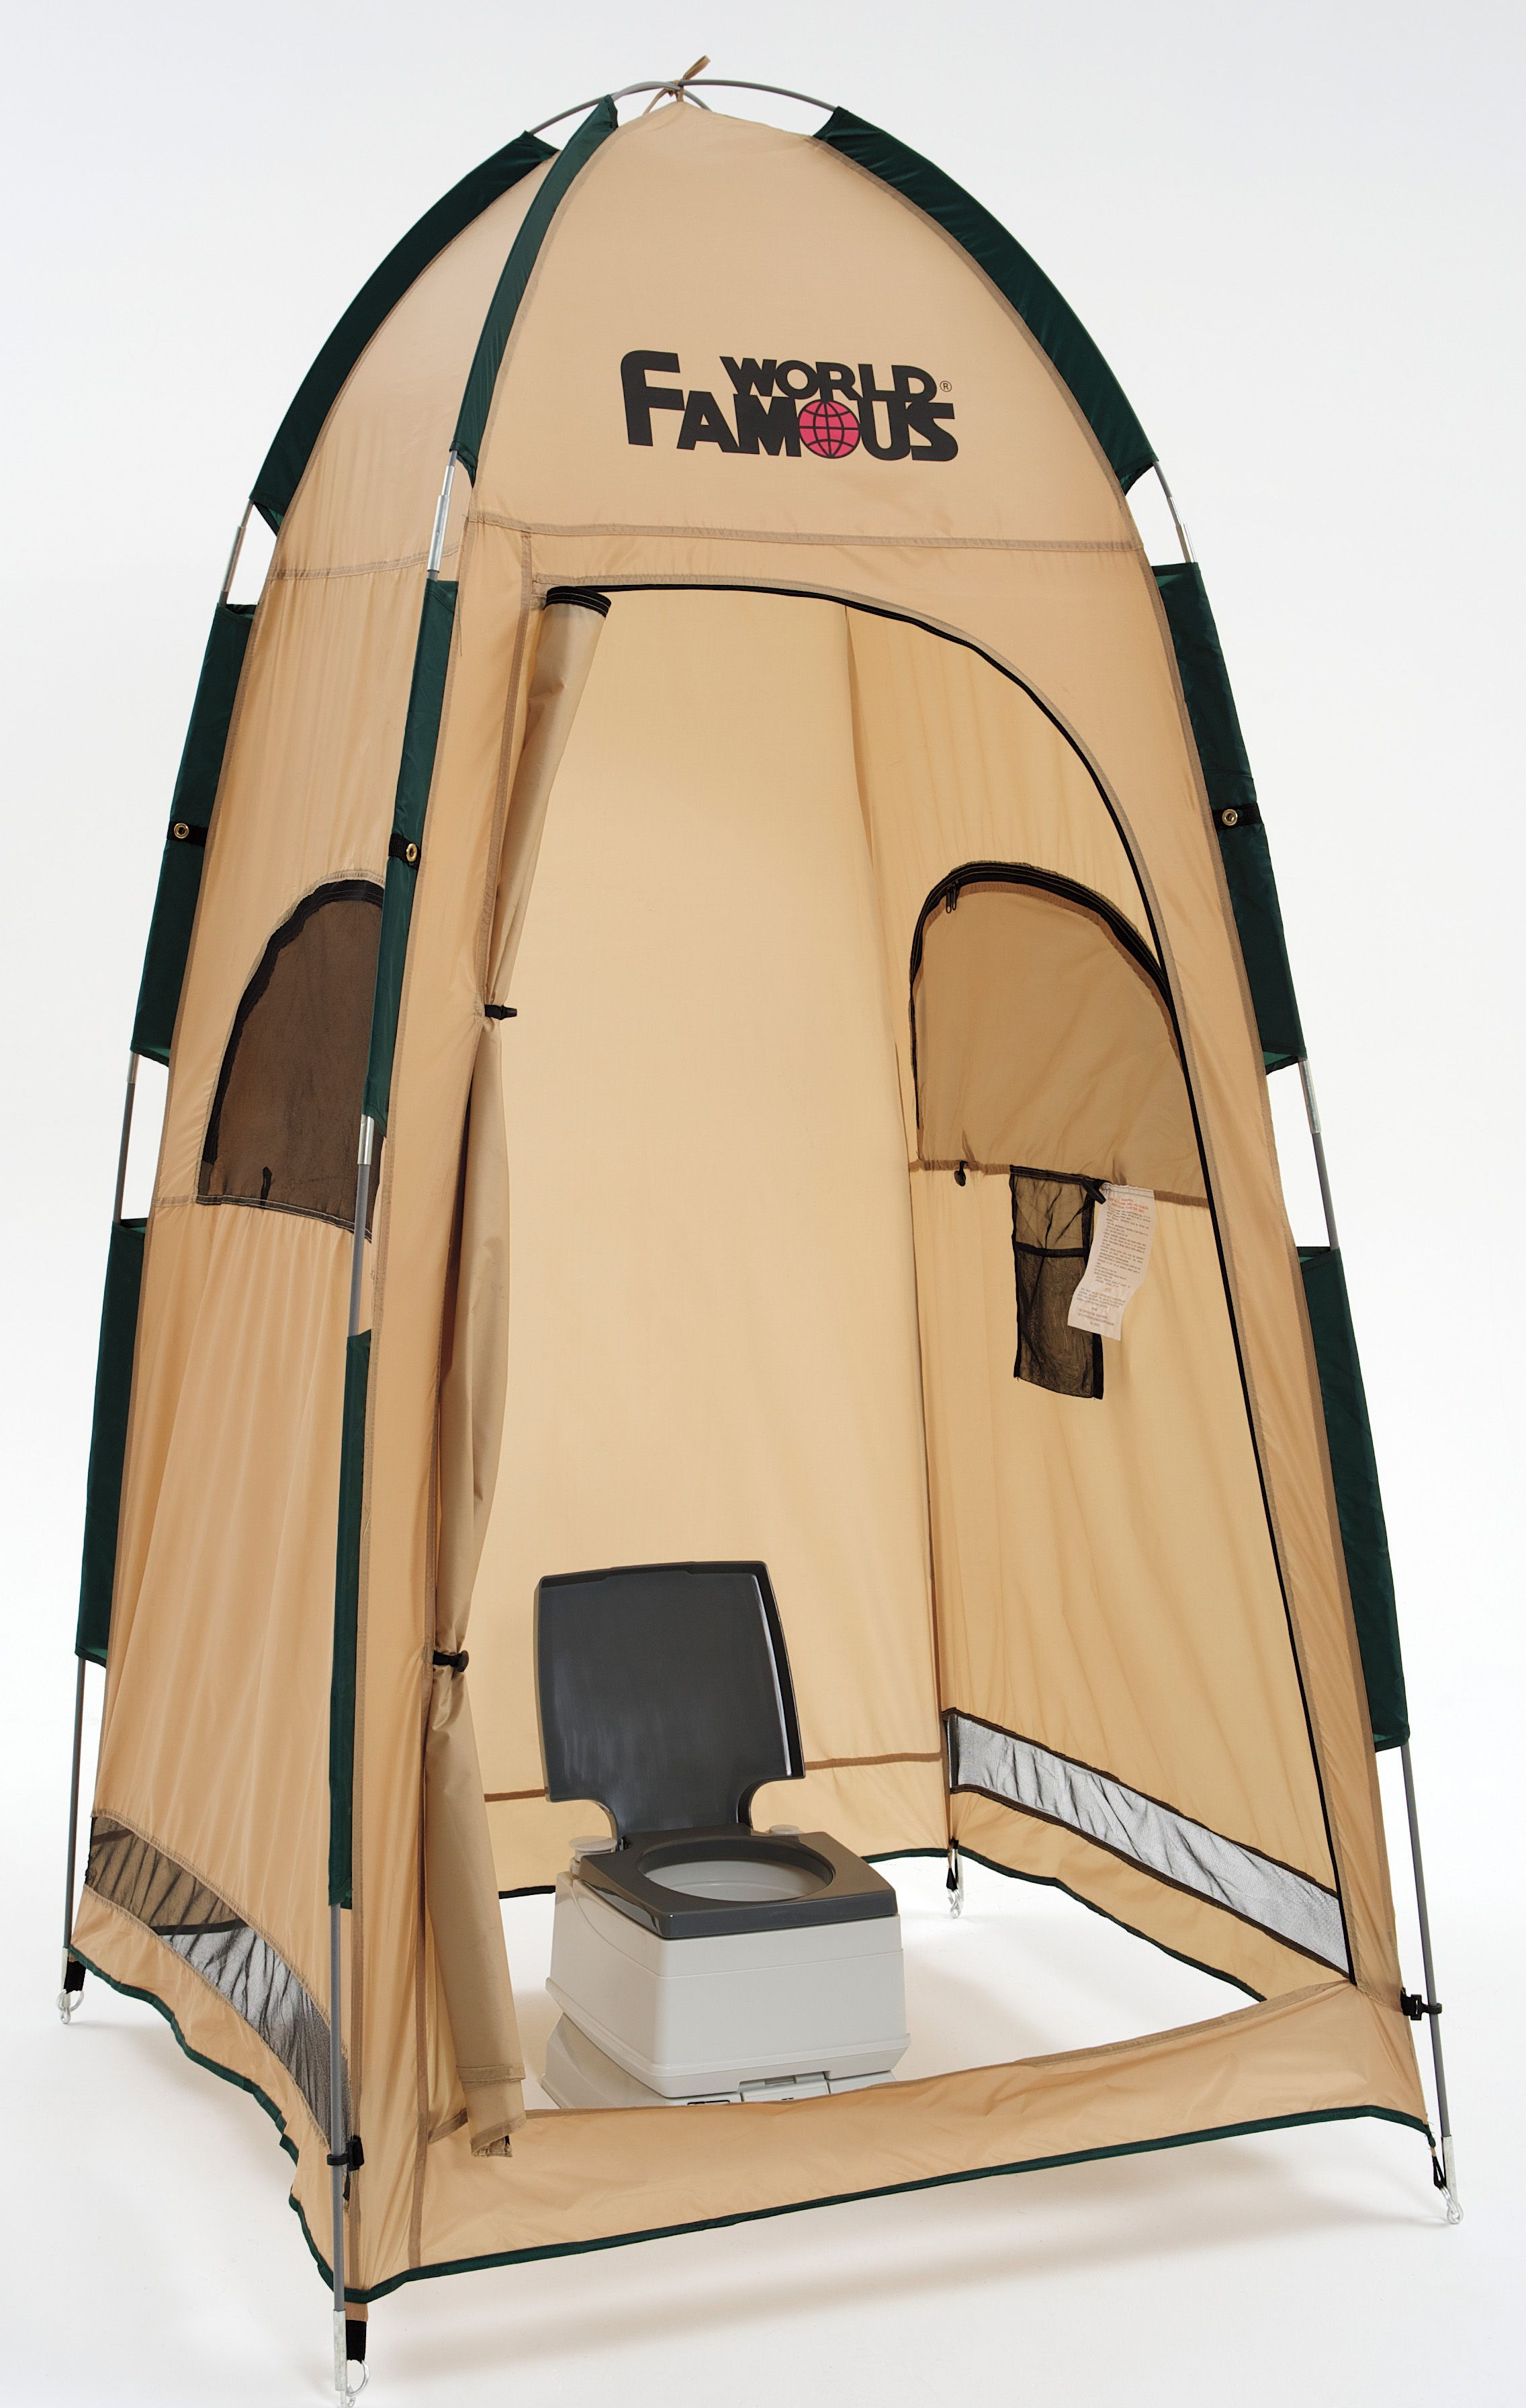 The Porta-Privy Privacy Bathroom #Tent Shelter is ideal for use as an outdoor & The Porta-Privy Privacy Bathroom #Tent Shelter is ideal for use as ...